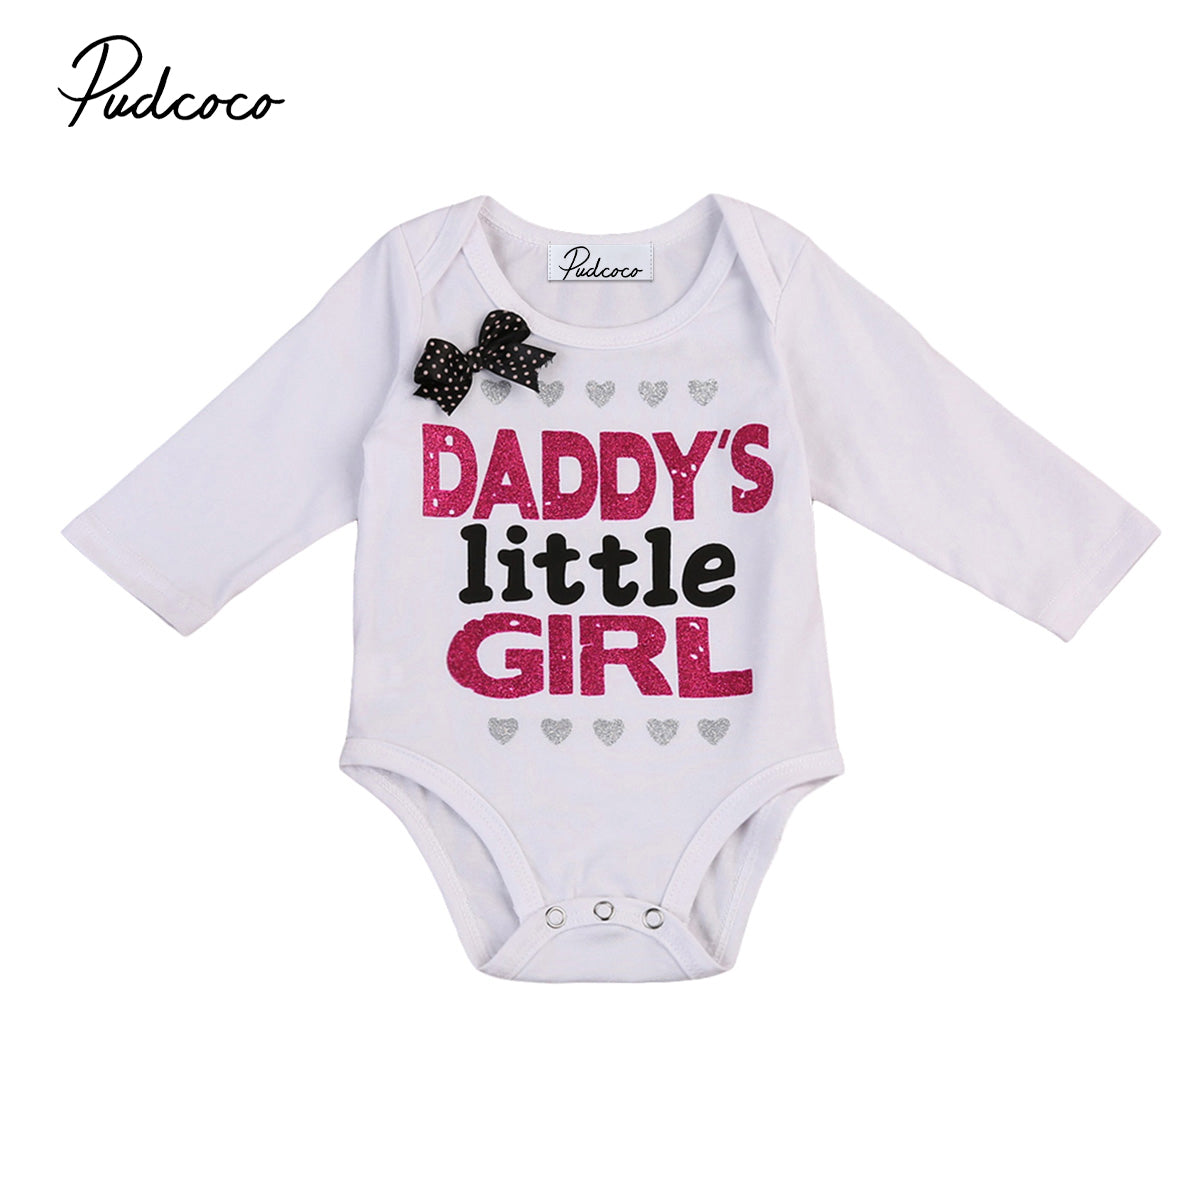 Pudcoco 2019 Hot Selling Funny Letter Print 0-24M Newborn Baby Girls Bodysuits Short&Long Sleeve